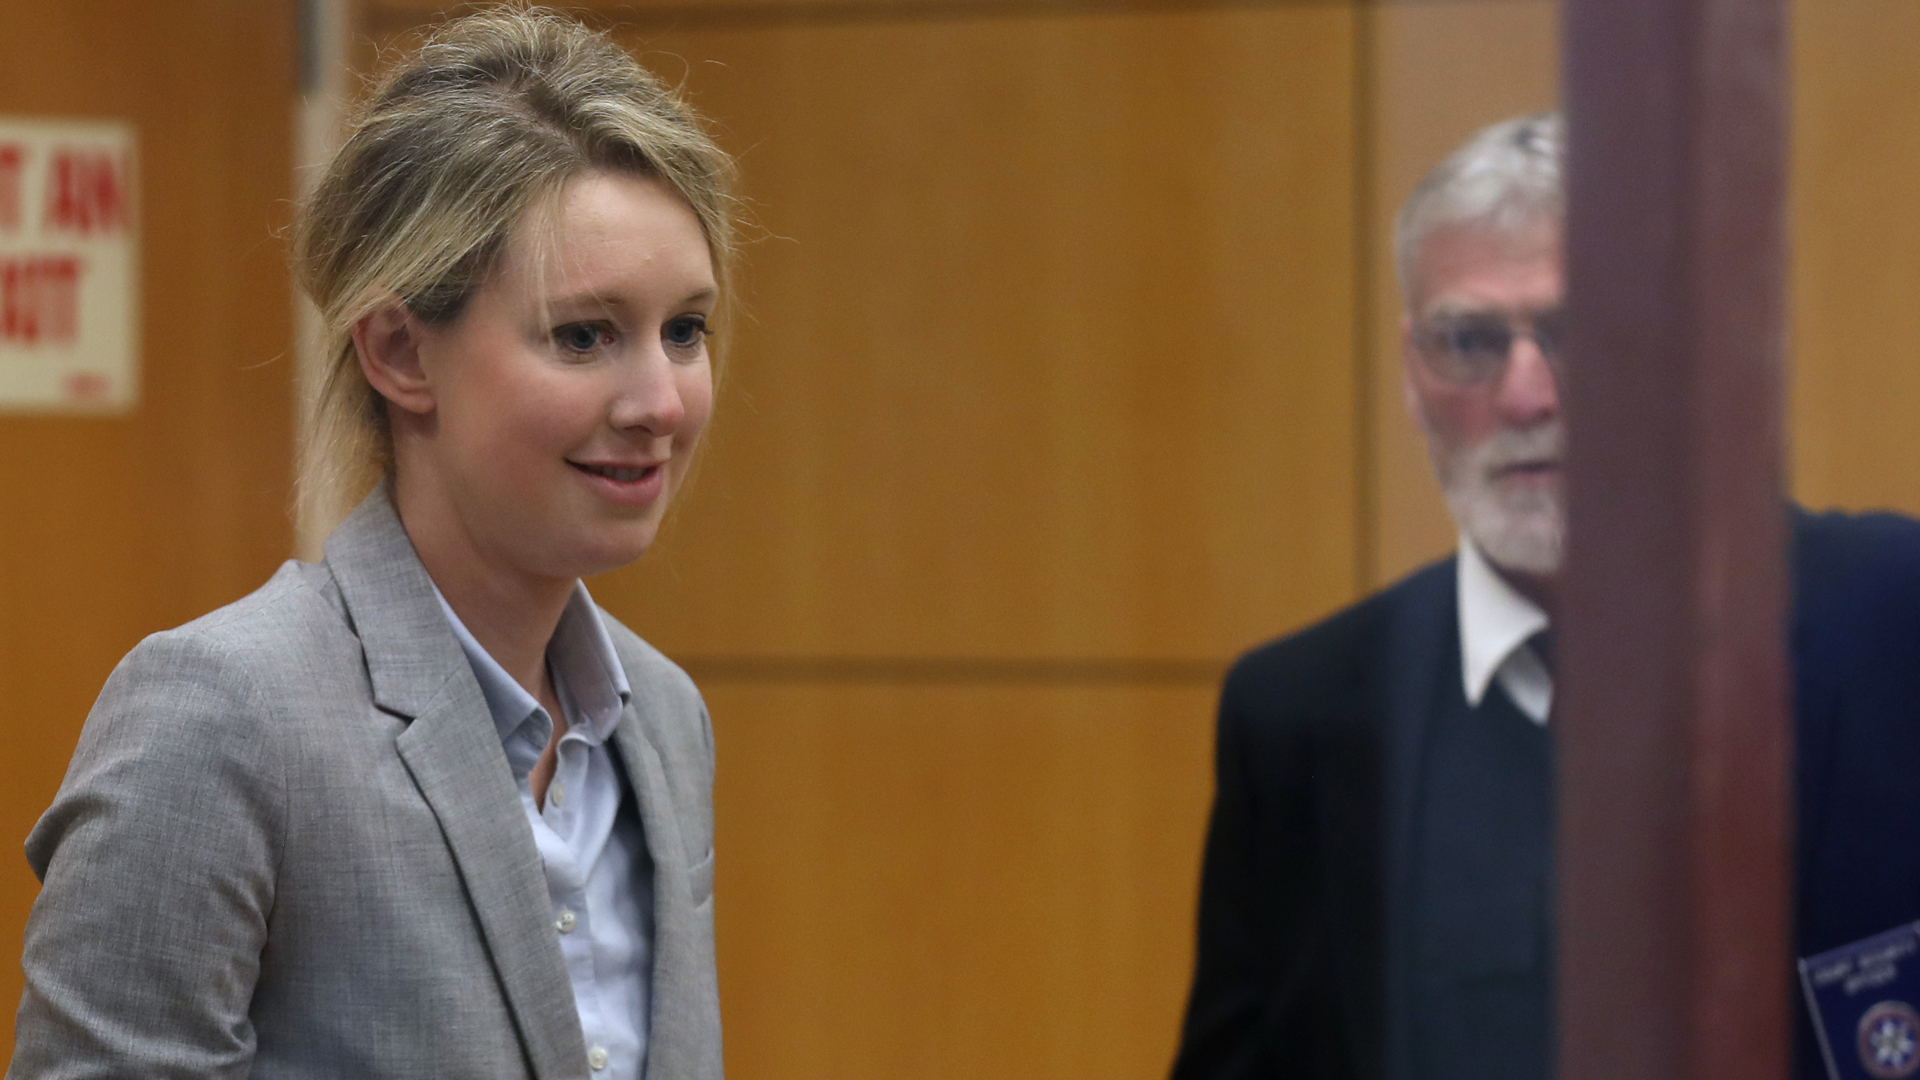 Former Theranos founder and CEO Elizabeth Holmes arrives at the Robert F. Peckham U.S. Federal Court on April 22, 2019, in San Jose, California. (Credit: Justin Sullivan/Getty Images)